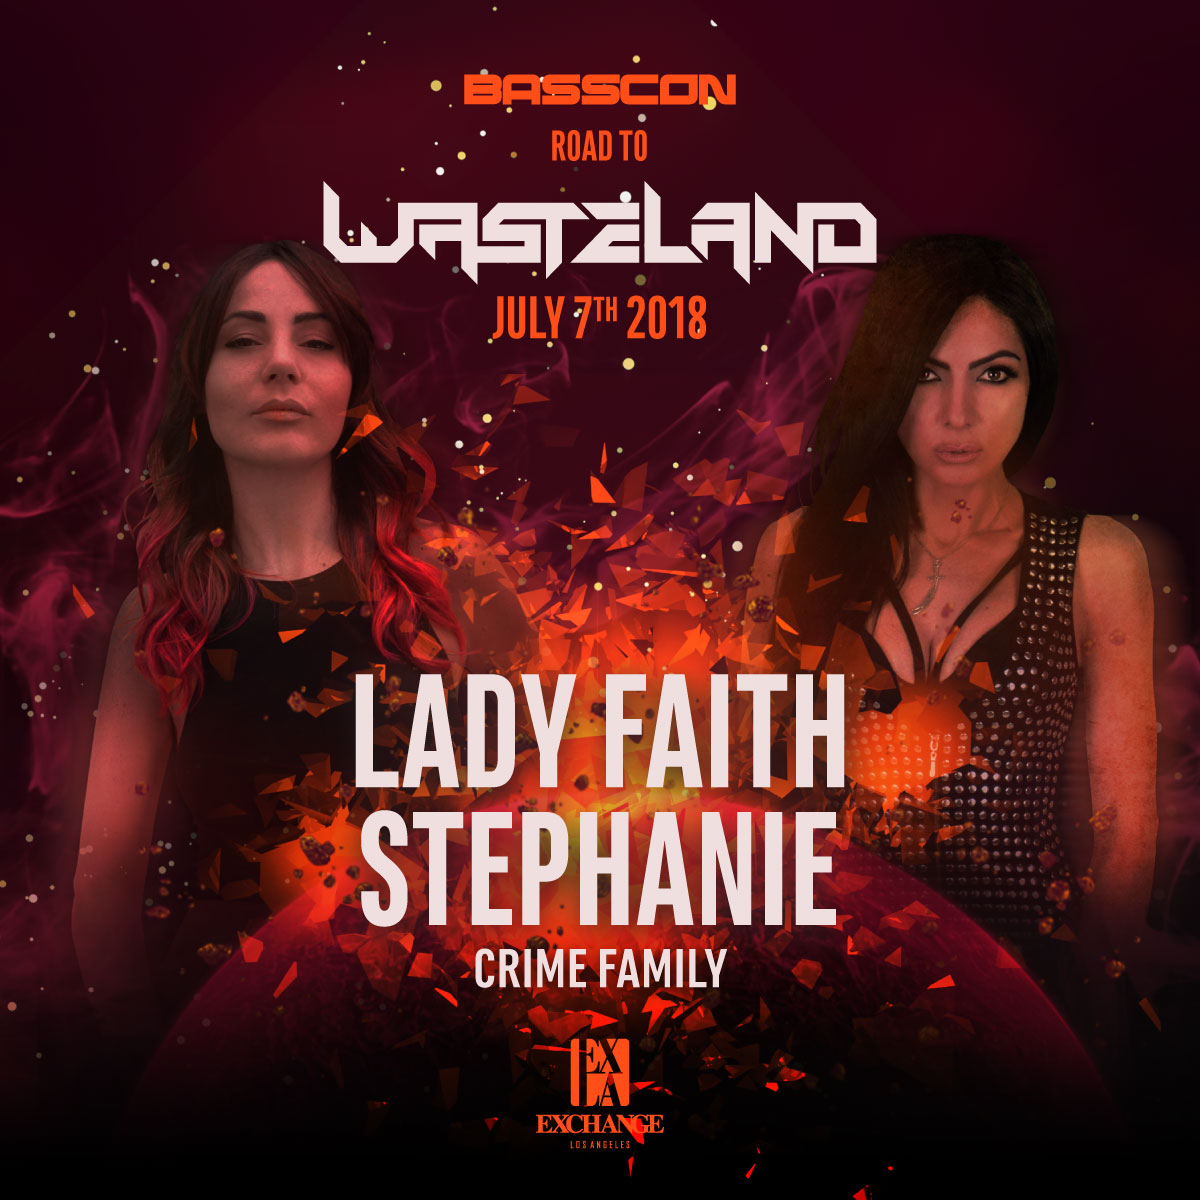 Road to Wasteland: Lady Faith & Stephanie